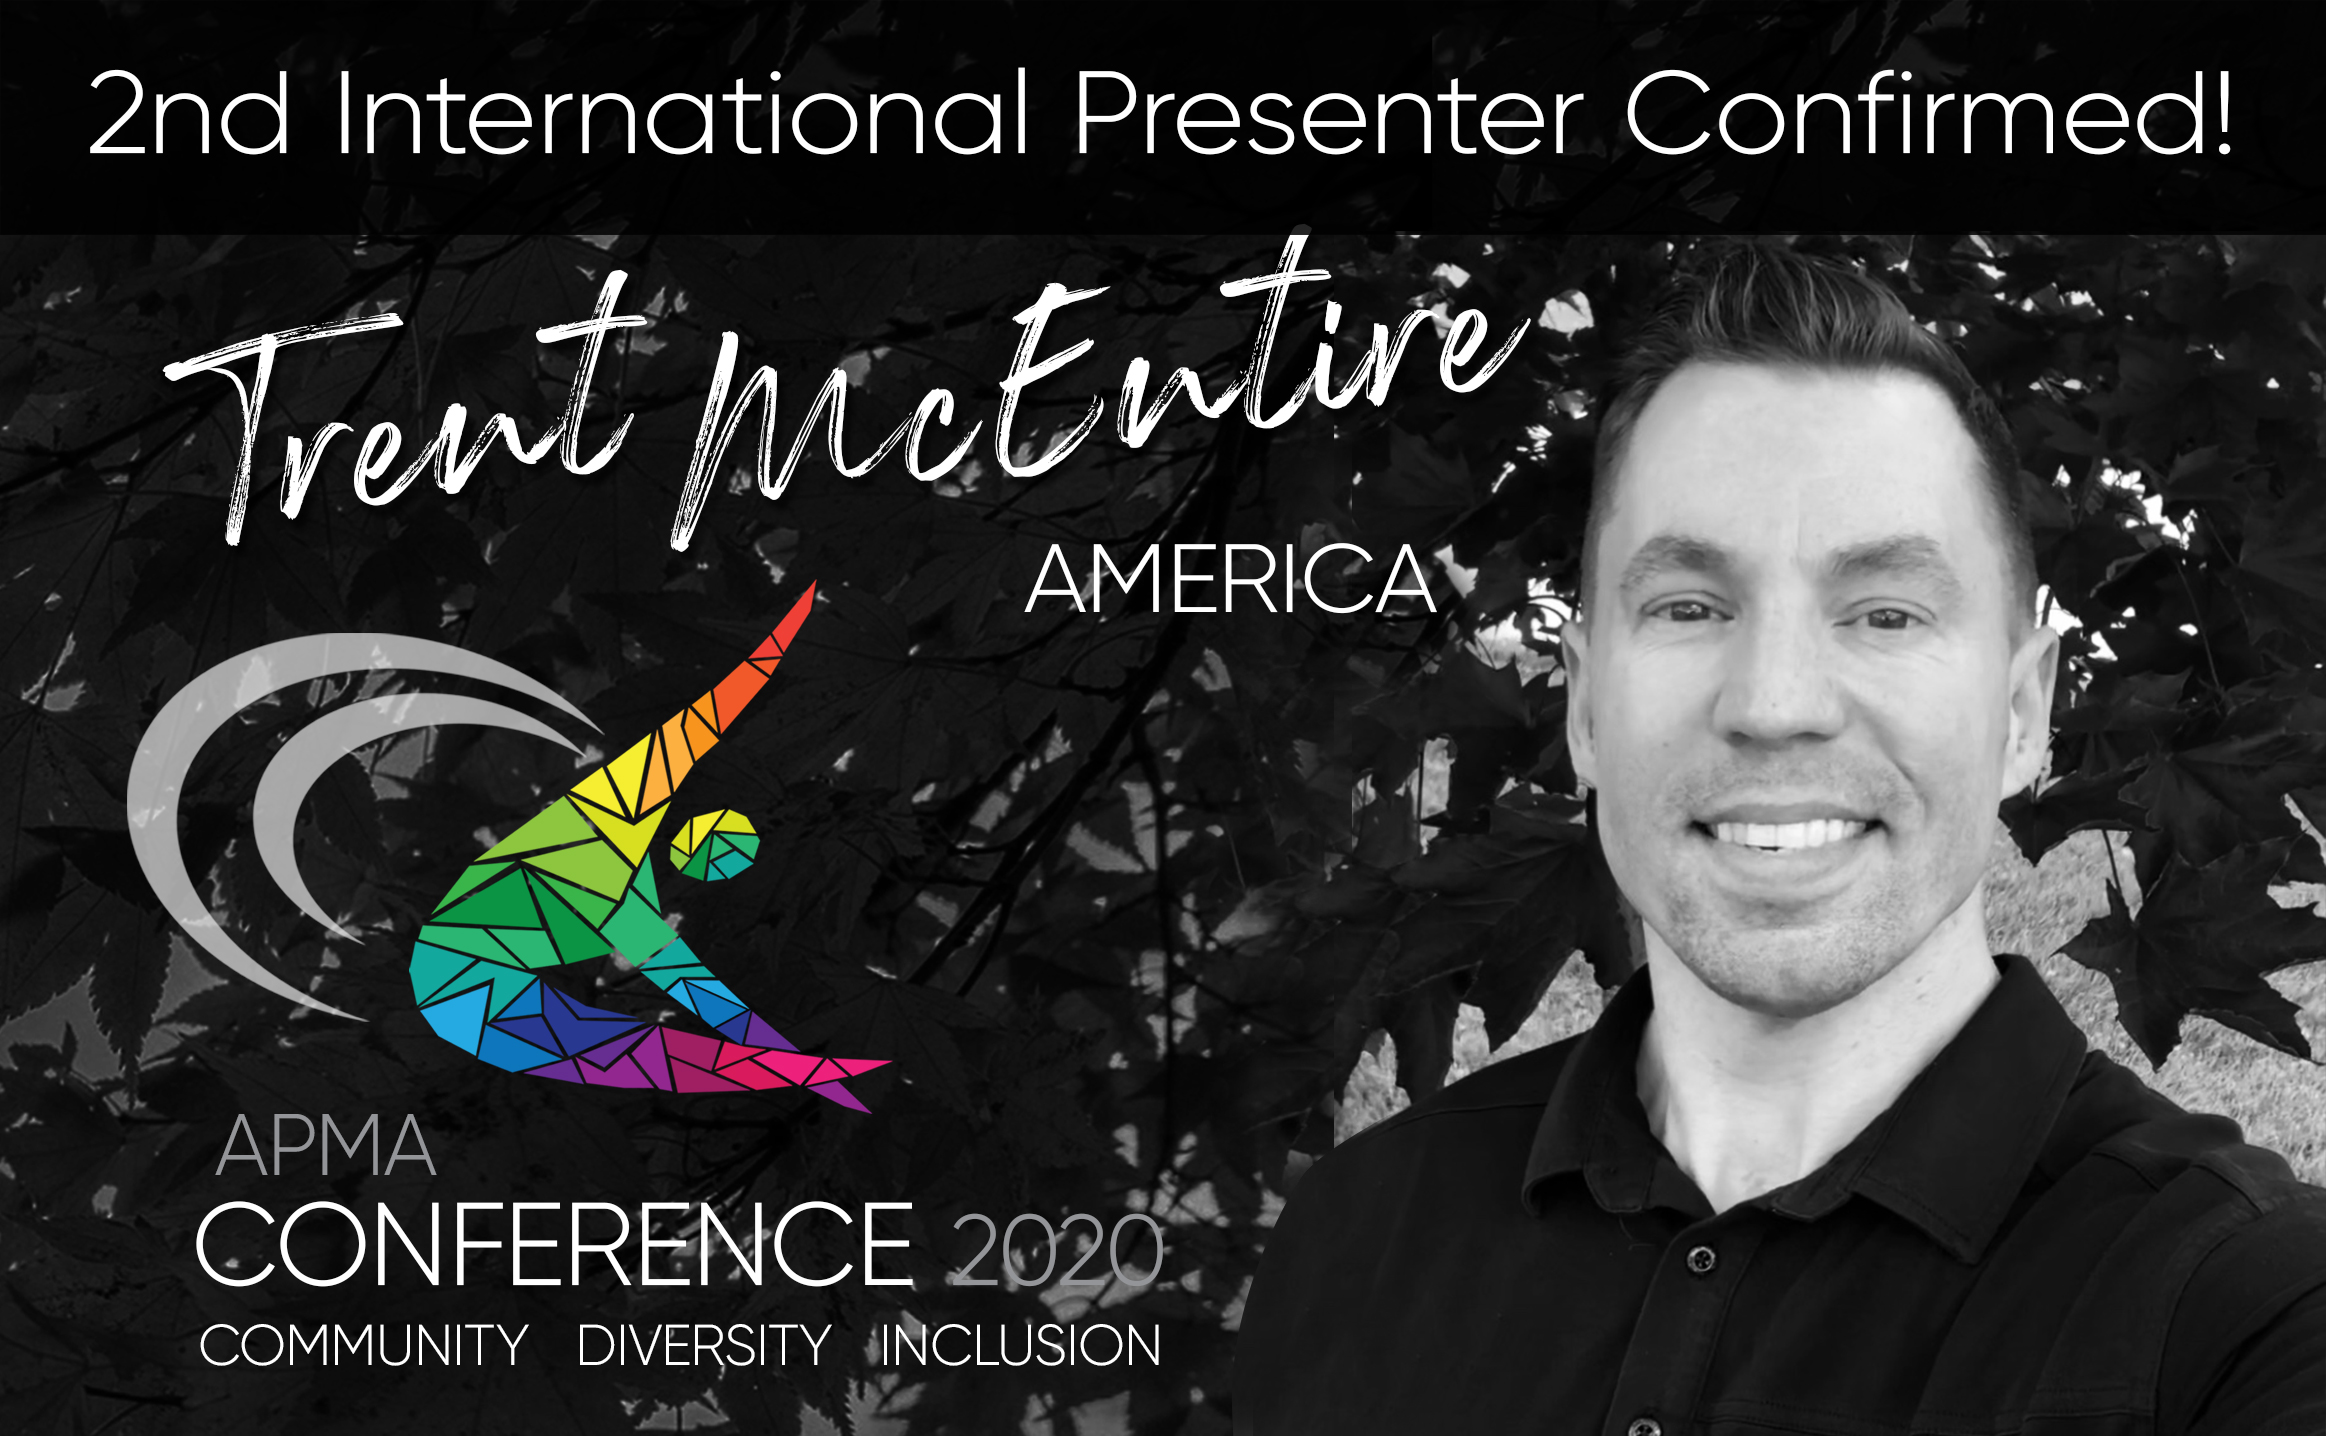 Excited to announce Trent McEntire is coming to APMA 2020 Conference!